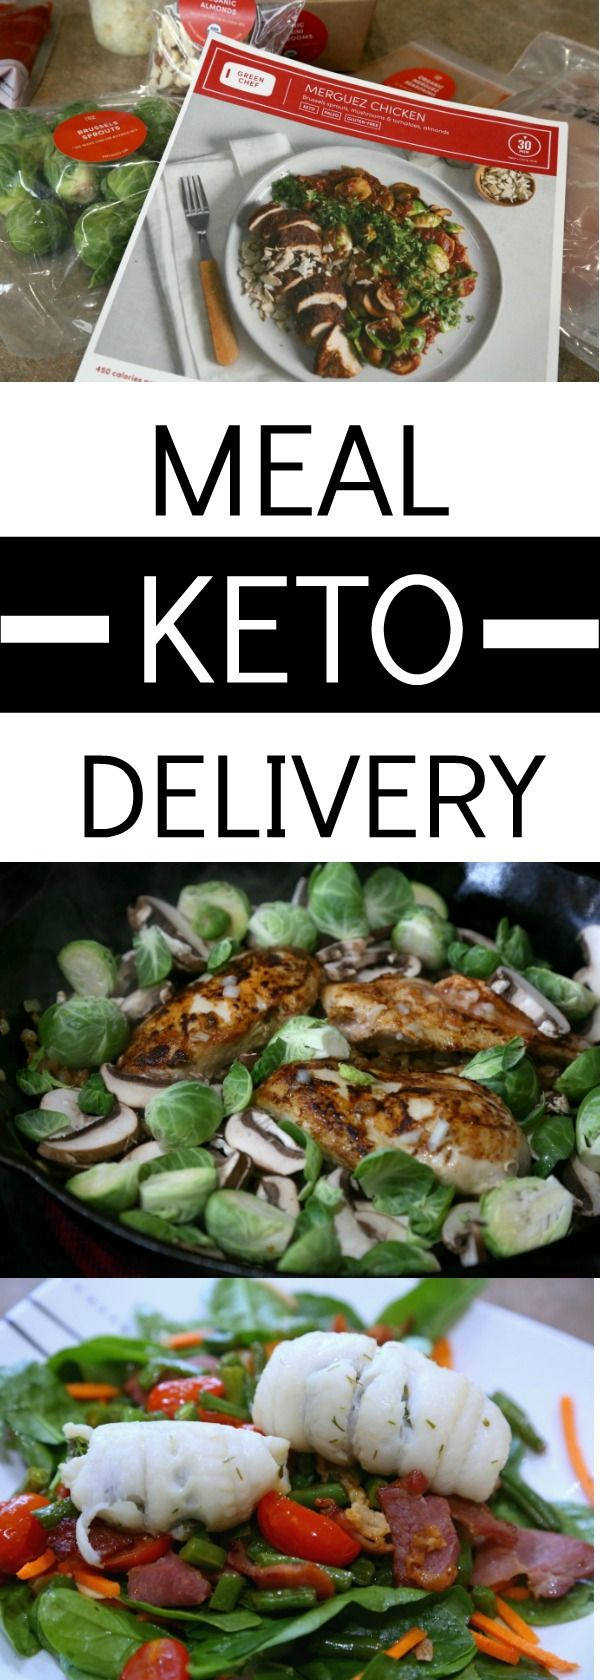 Keto Meal Delivery Green Chef Keto Meal Review Green